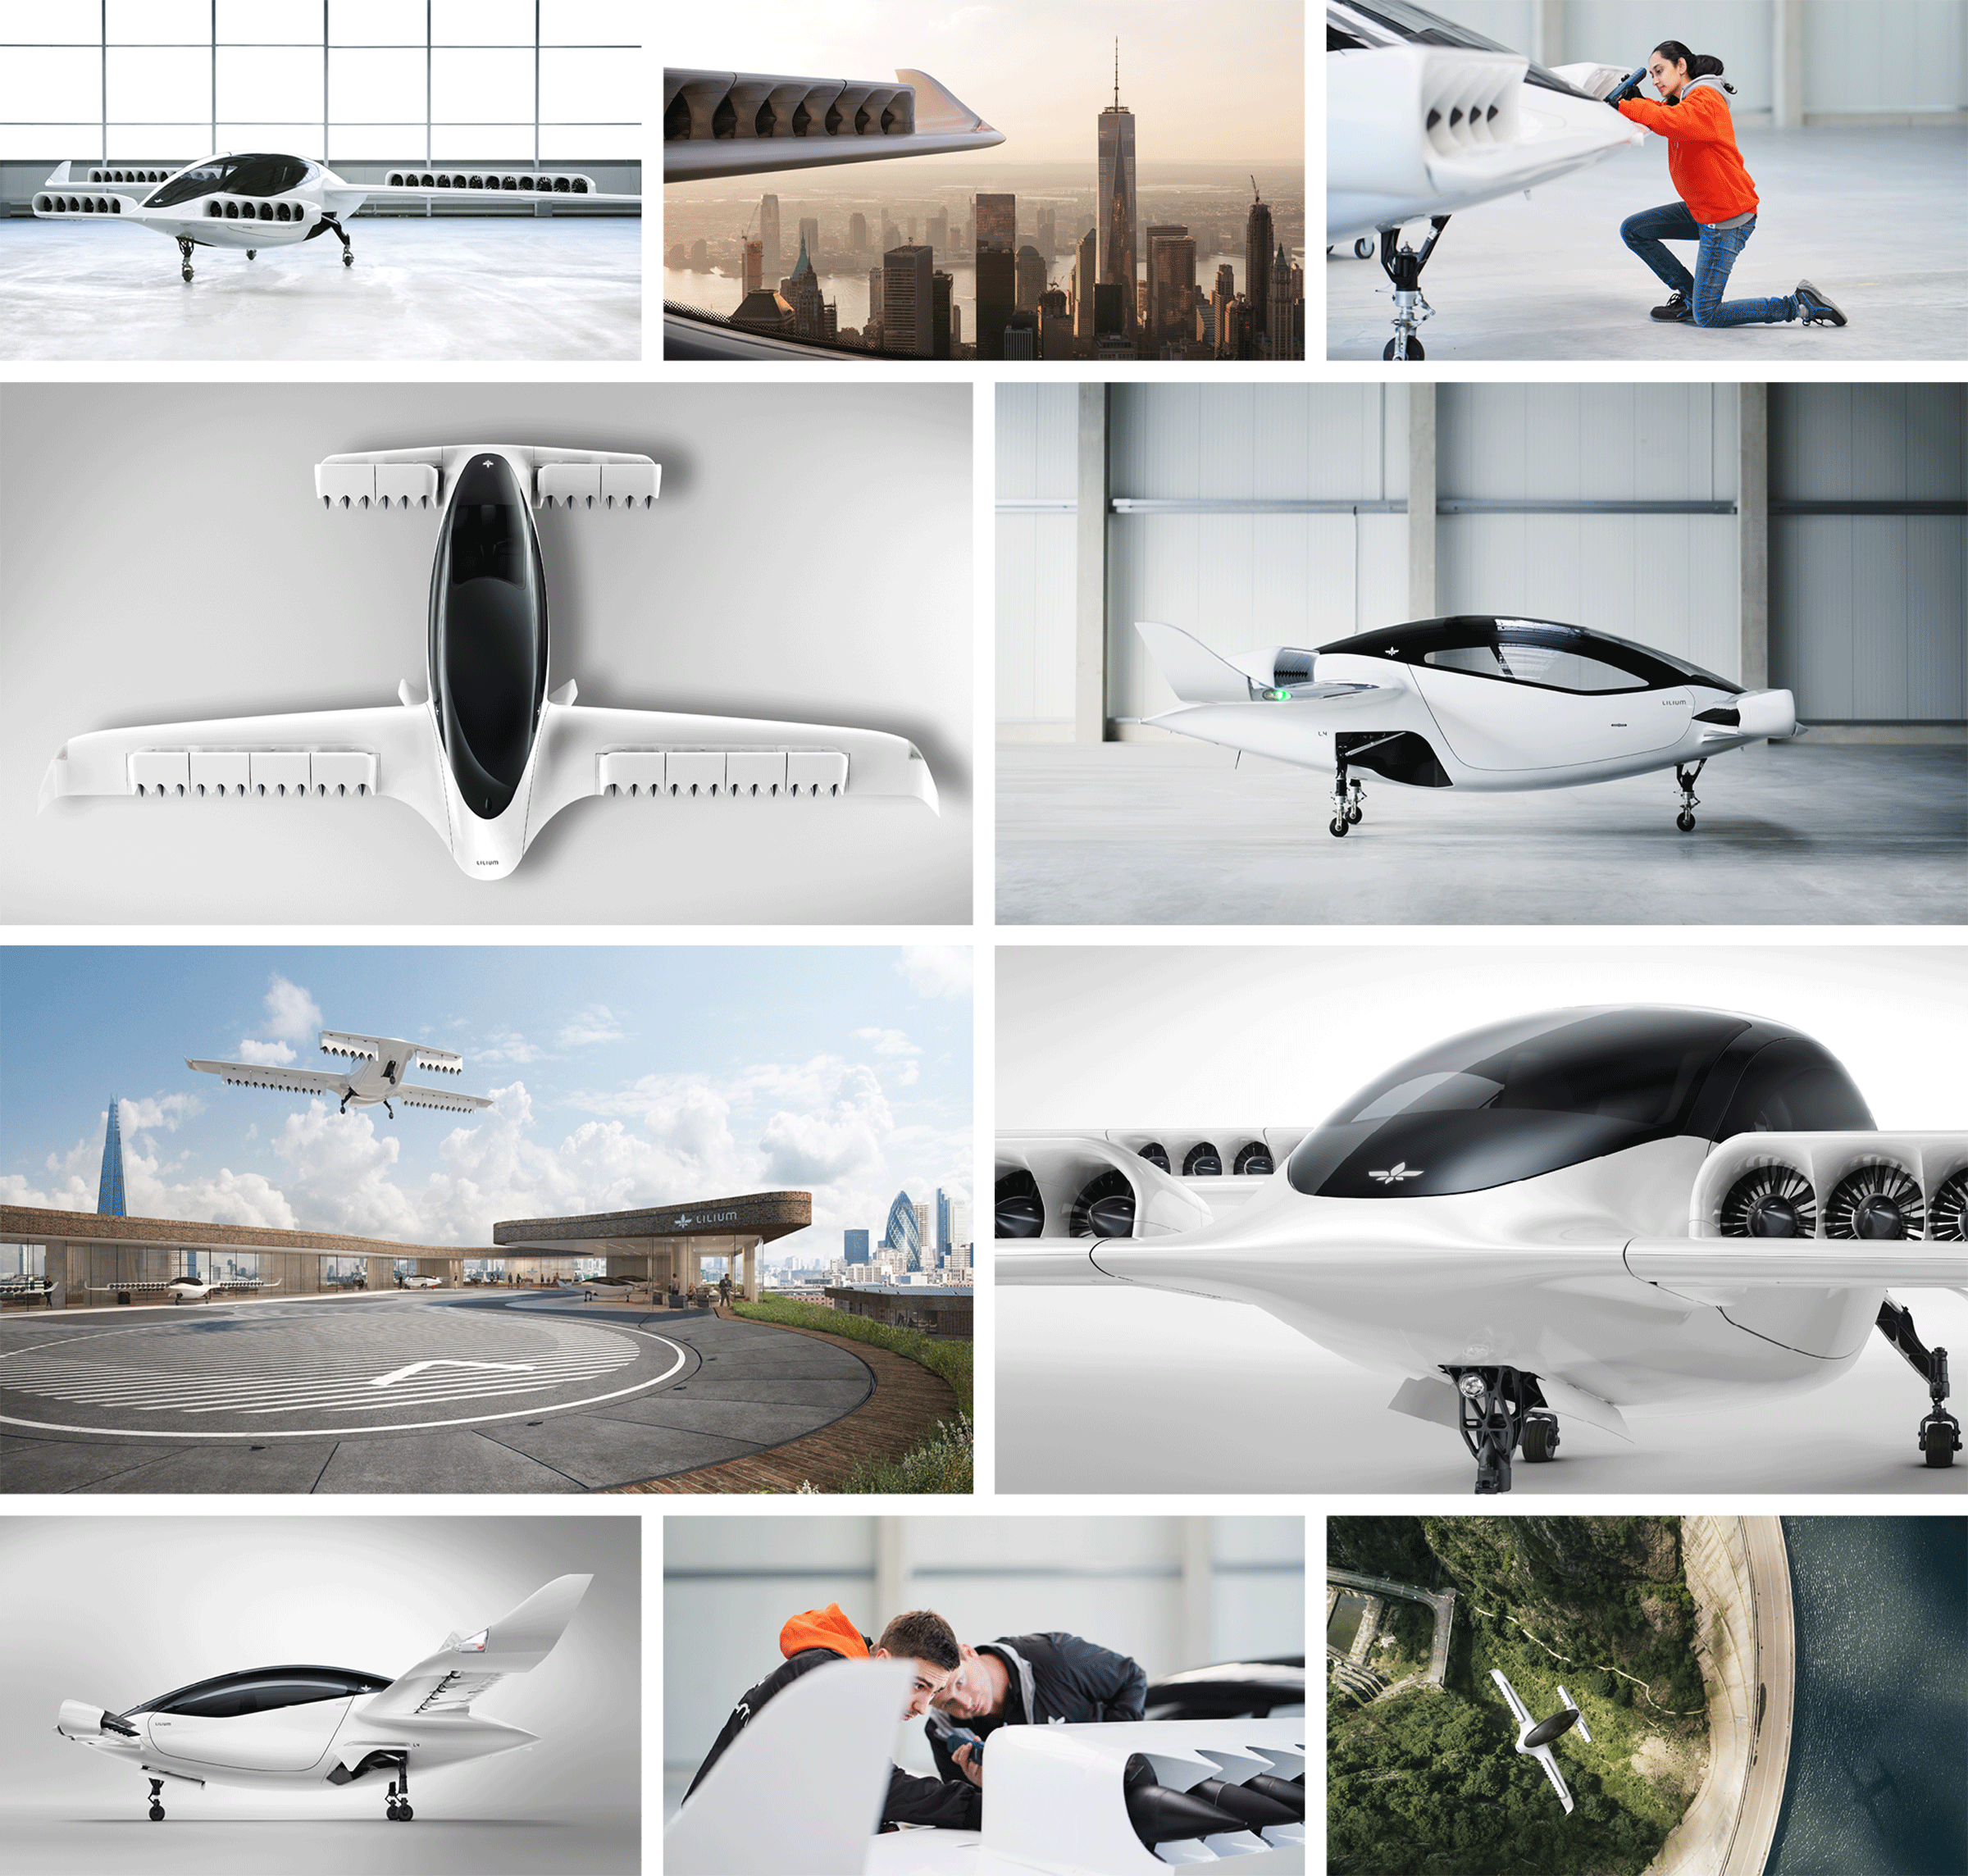 Five-seater electric air-taxi lifts off in Munich